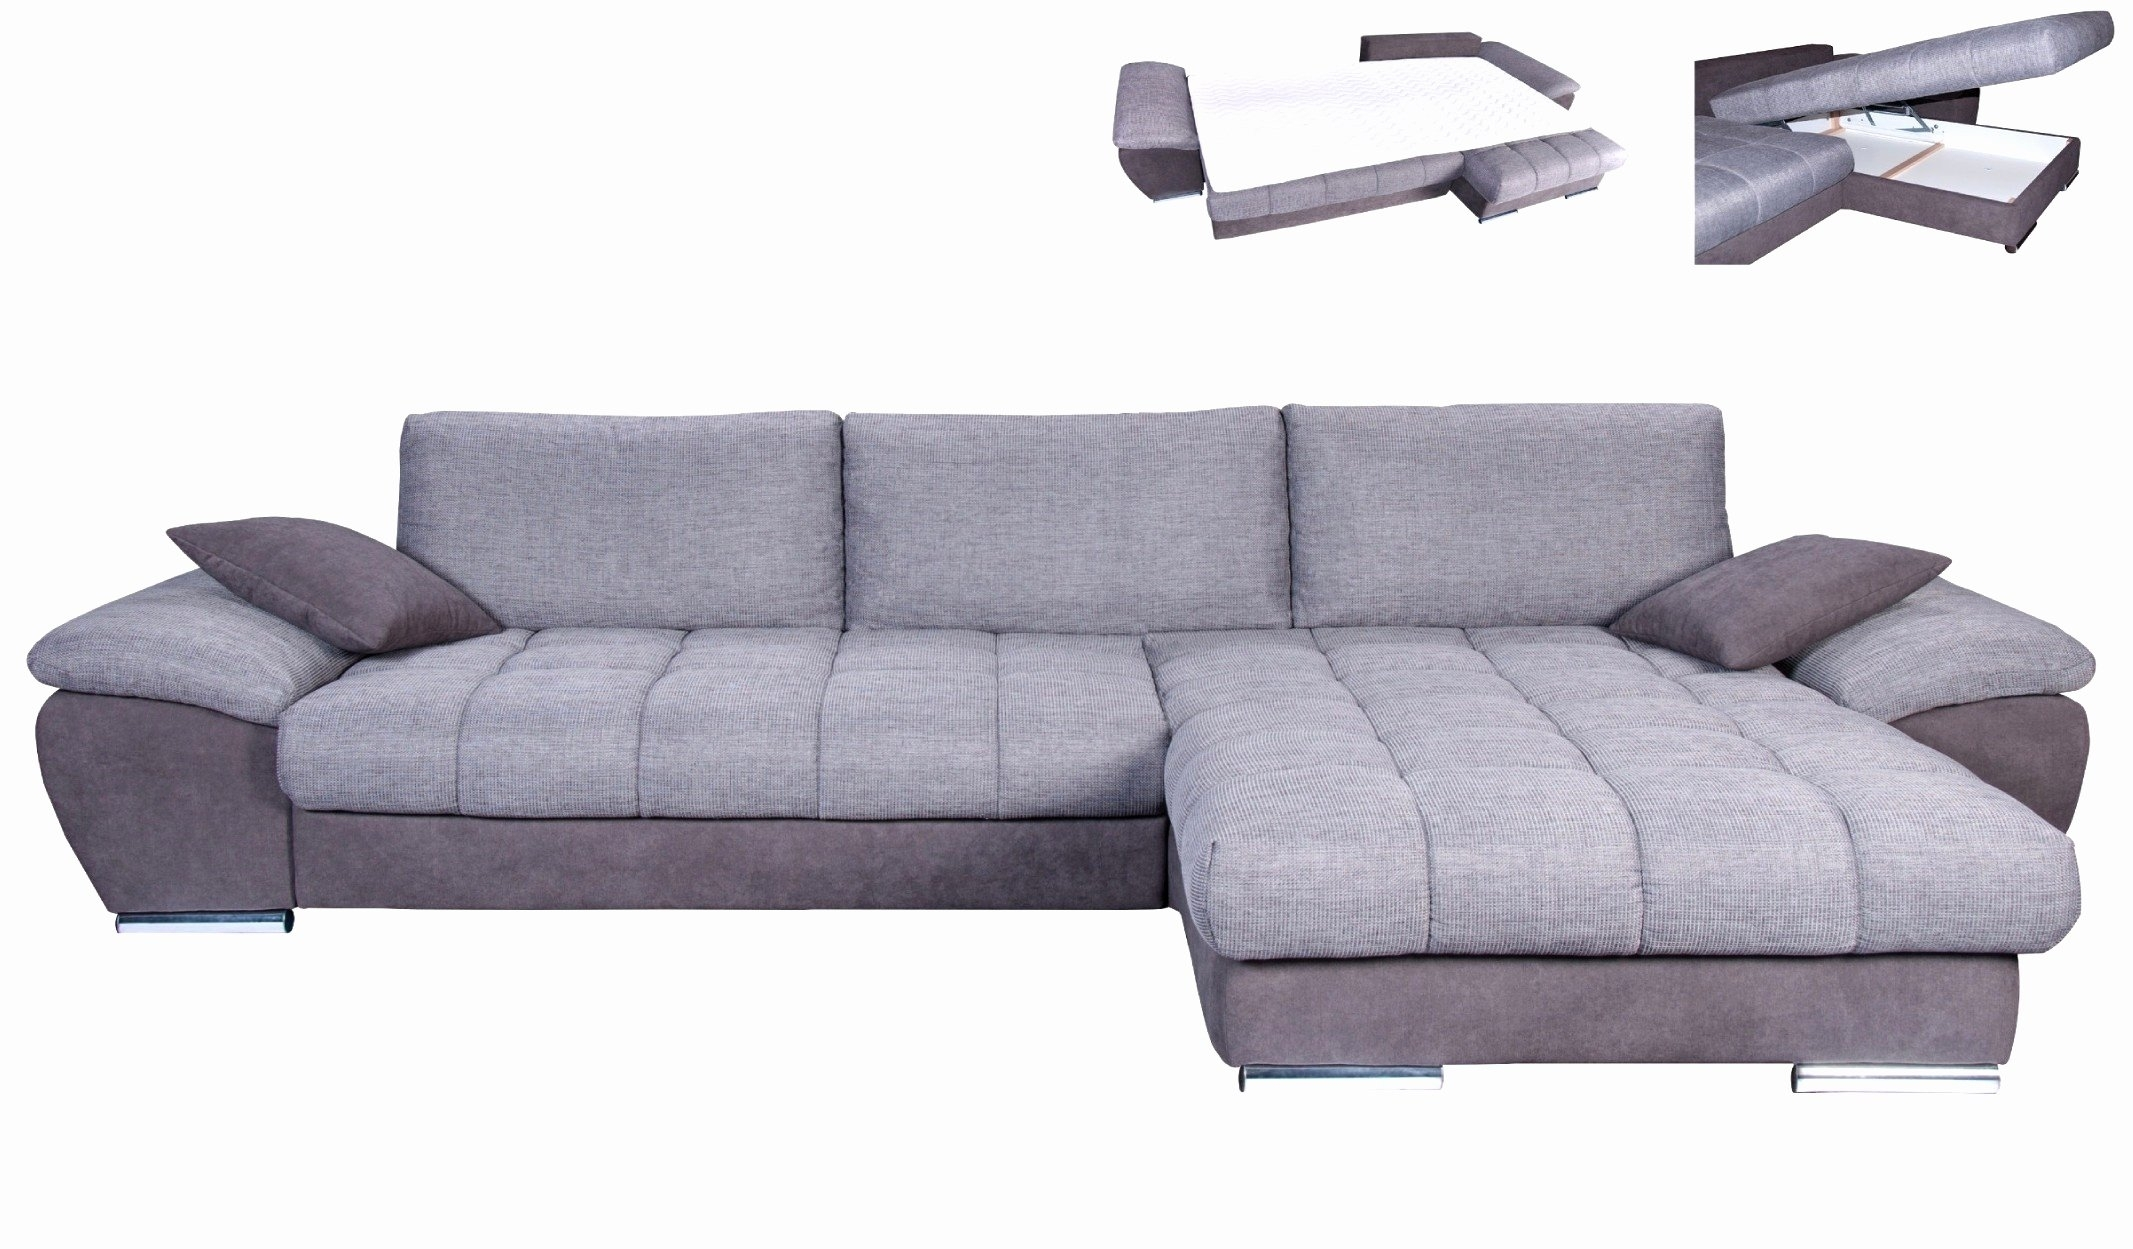 Simple 25 2 Piece Sectionals With Chaise Awesome | Russiandesignshow With Aquarius Light Grey 2 Piece Sectionals With Laf Chaise (View 24 of 25)